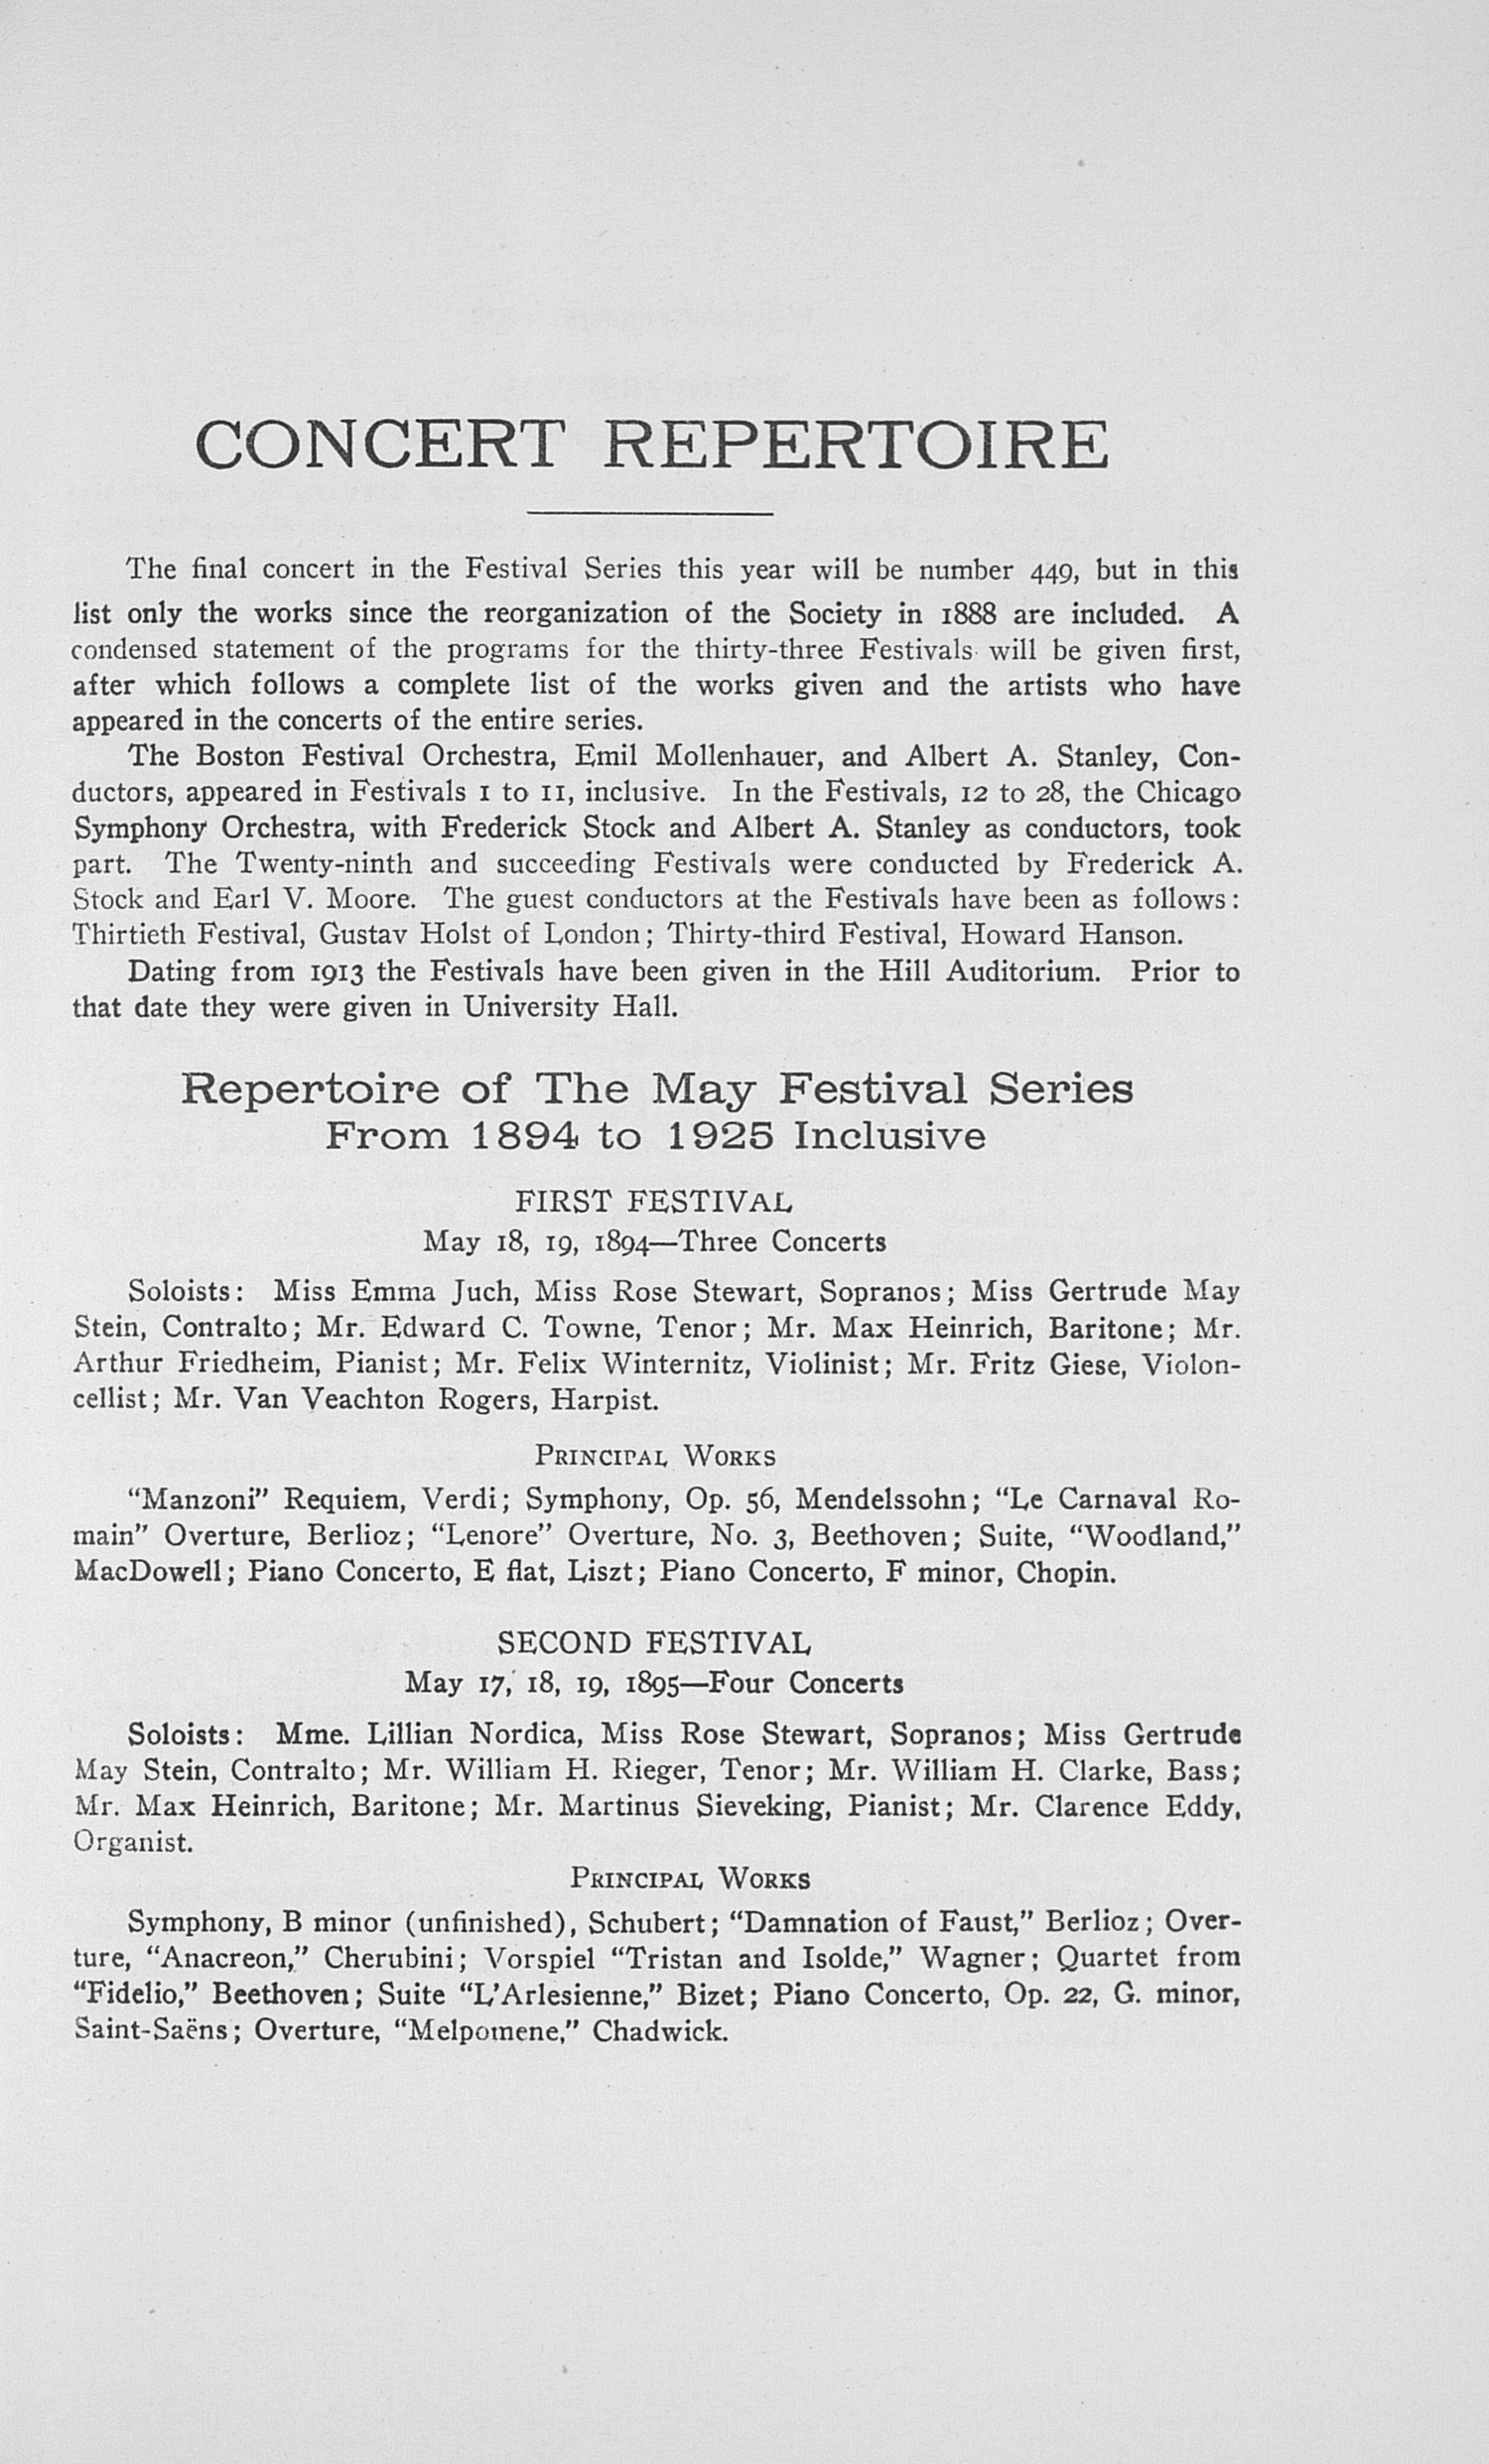 UMS Concert Program, May 19, 20, 21, 22 1926: The Thirty-third Annual May Festival -- Earl V. Moore image